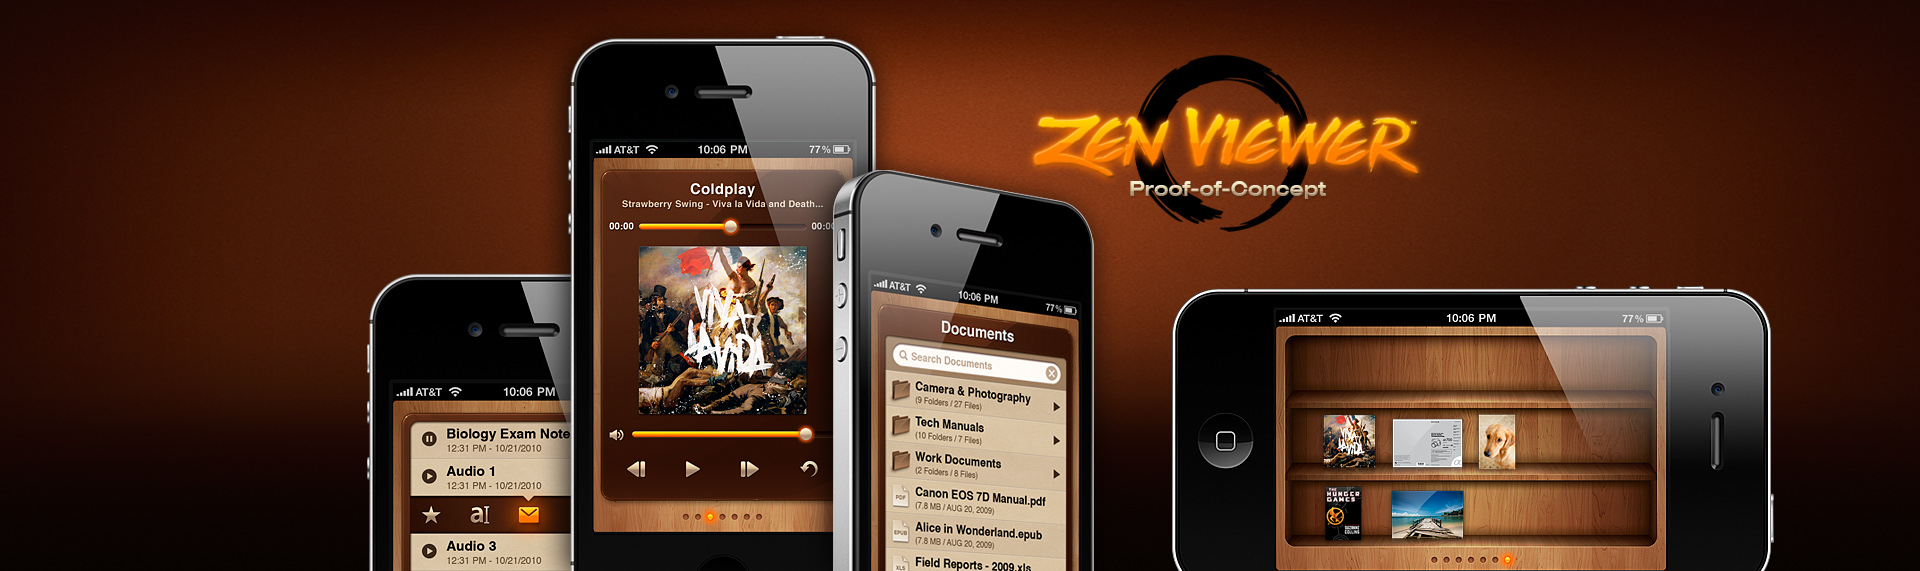 Zen Viewer for iPhone  iPhone Application UX & UI Design, Brand Identity Design, Product Name Creation  Zen Viewer for iPhone was a prototype app design, The Skins Factory mocked up as a follow-up to our critically-acclaimed iPad app: Zen Viewer HD. Zen Viewer for iPhone offered a structured folder architecture for storing & viewing document files, images, music, videos and even allows you to record & playback your own audio files. While never reaching code development, Zen Viewer for iPhone demonstrates The Skins Factory's prowess when it comes to UI & UX design.